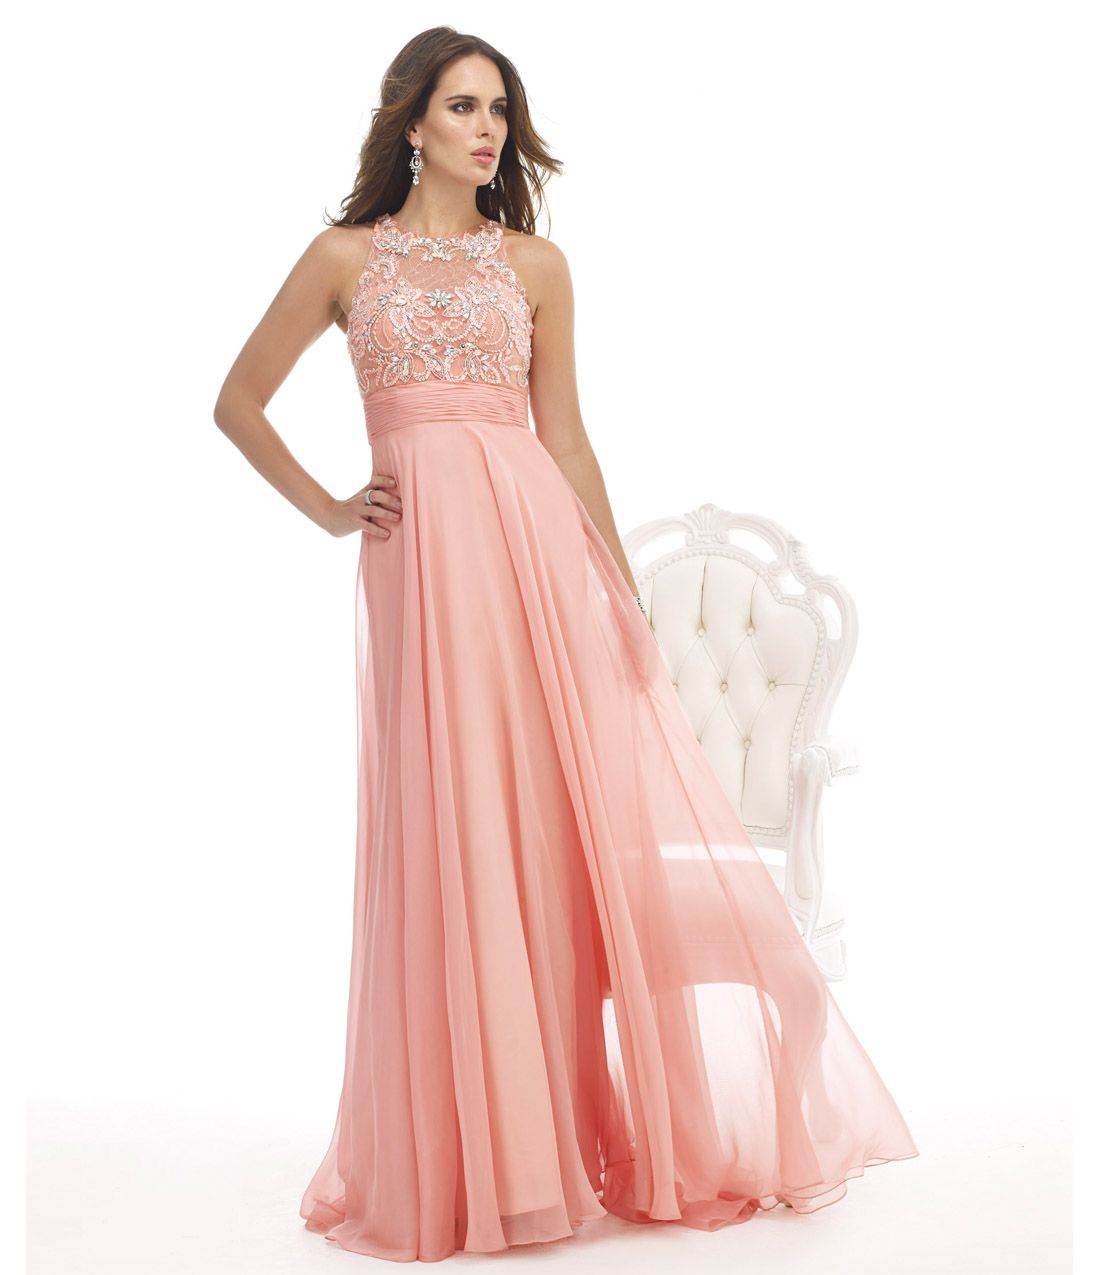 S style prom dresses formal dresses evening gowns rosy pink